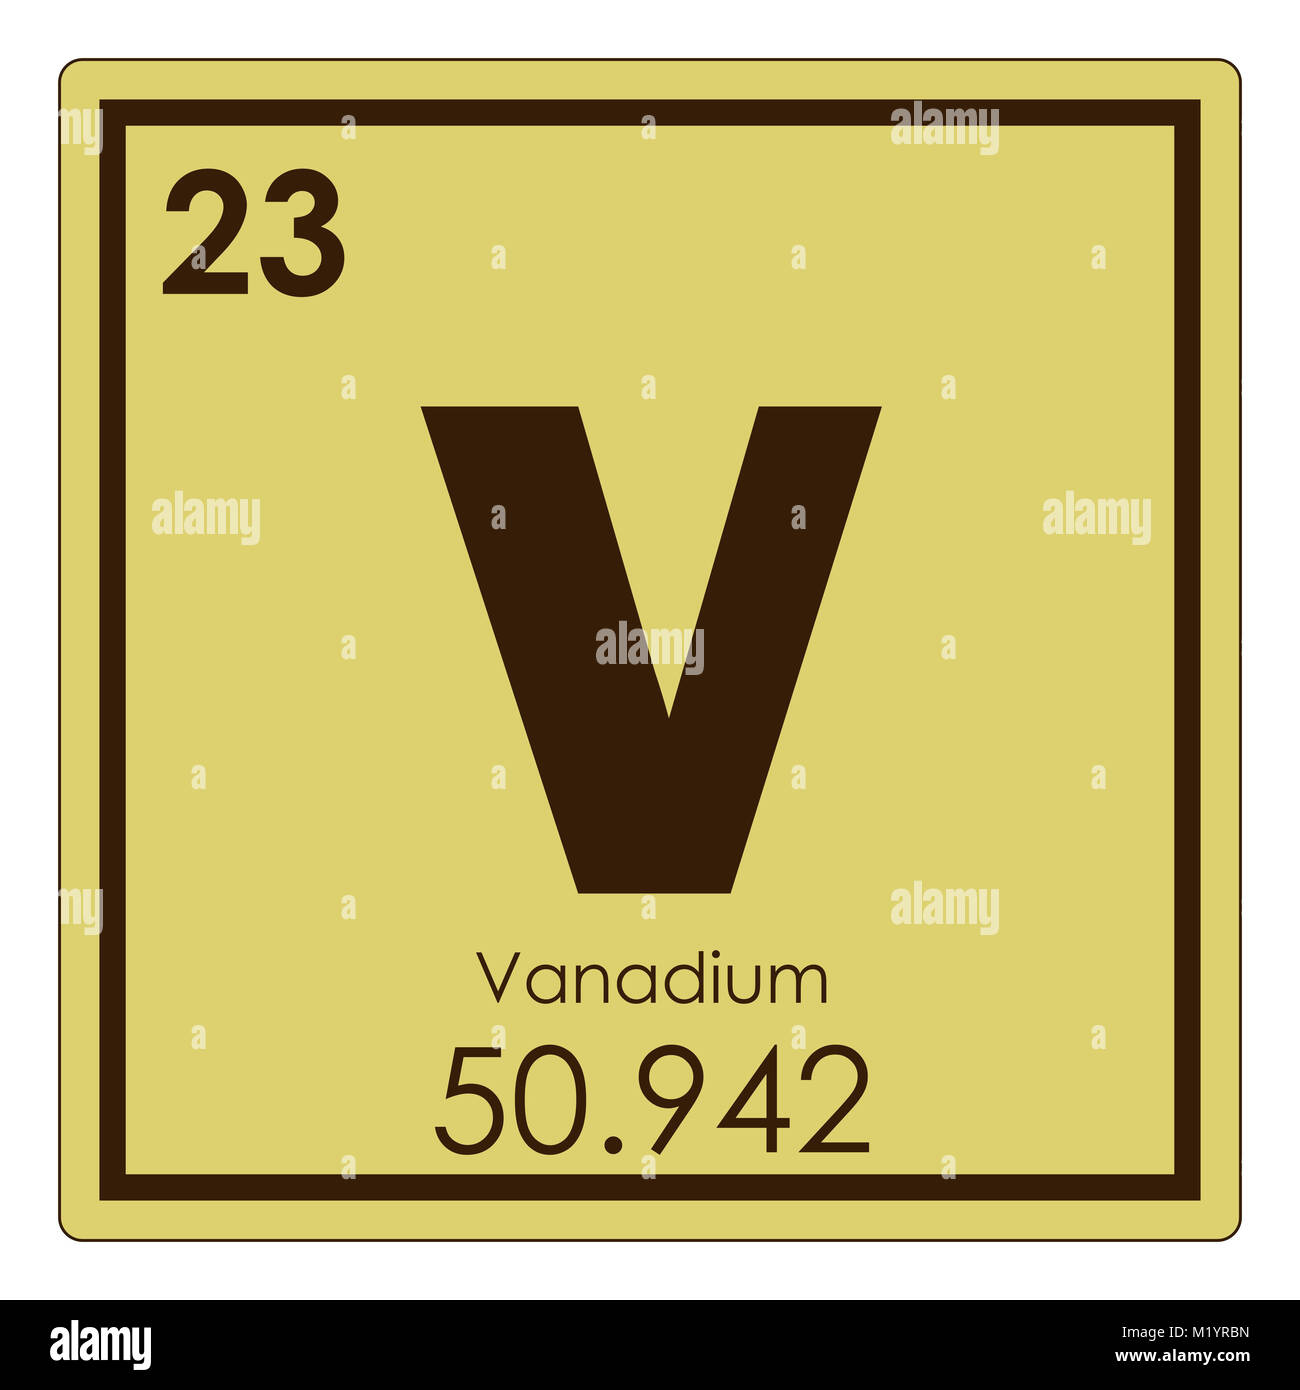 Symbol chemical element vanadium stock photos symbol - Vanadium symbol periodic table ...